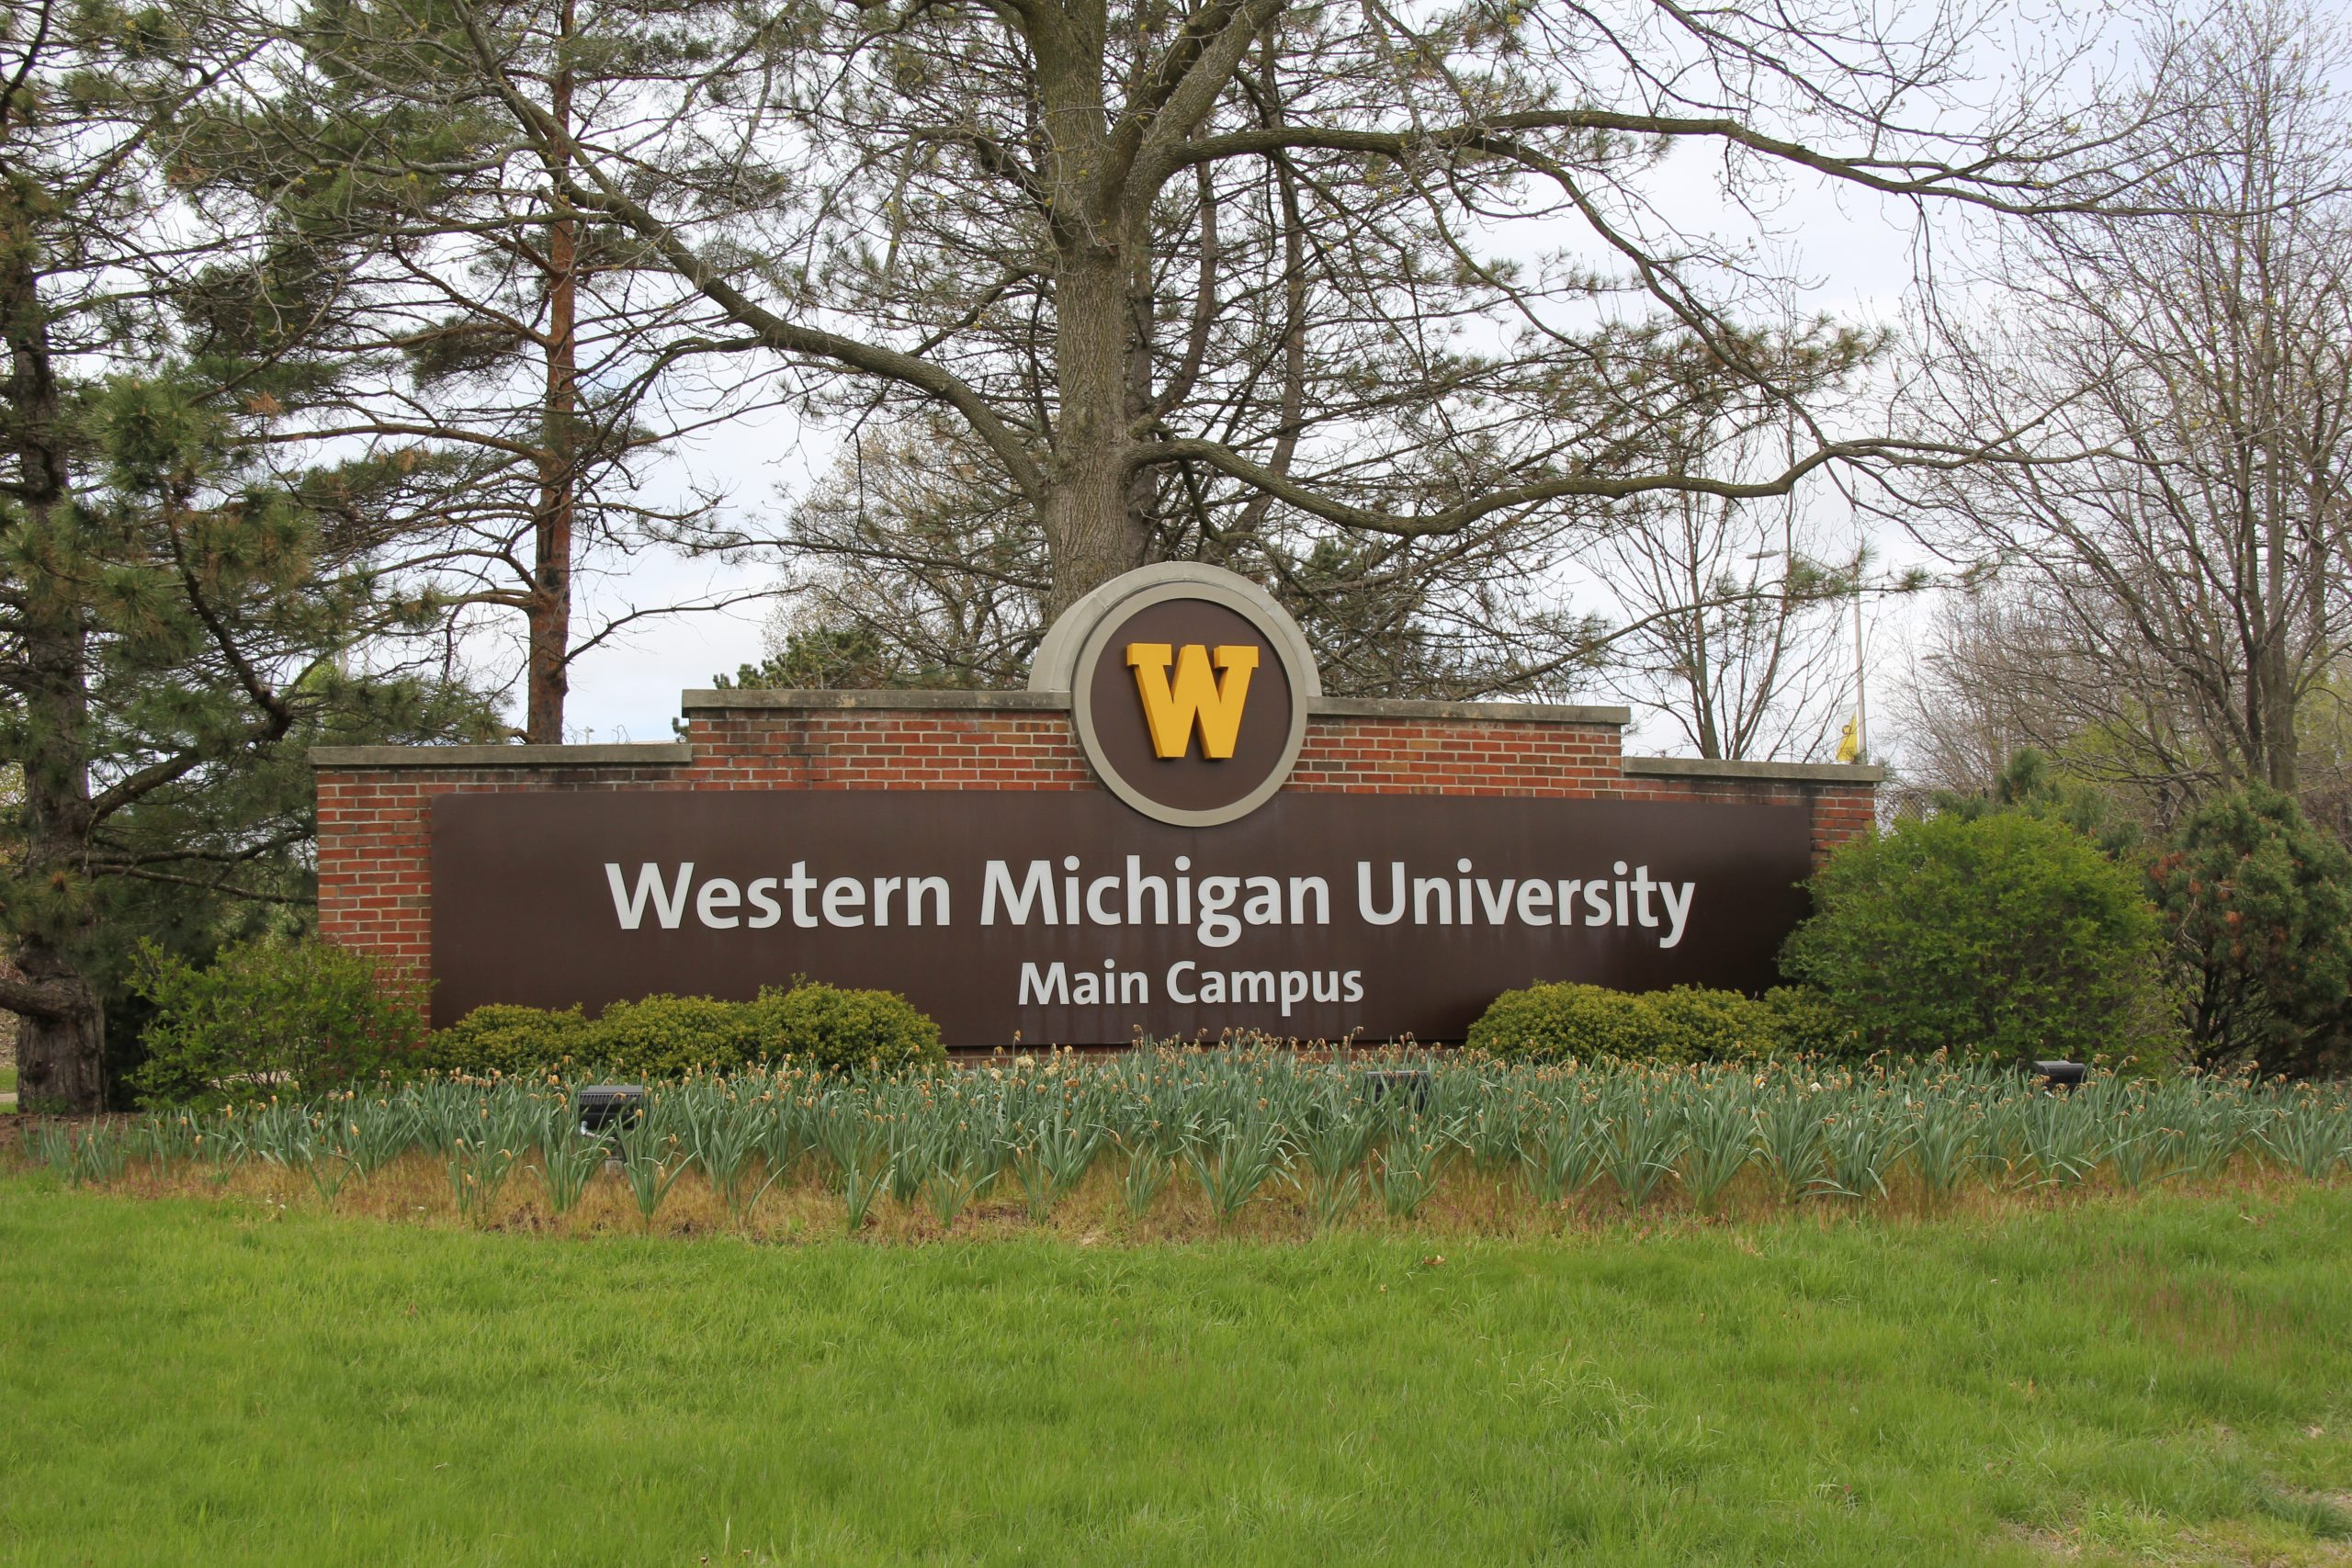 sign marking Western Michigan University's main campus